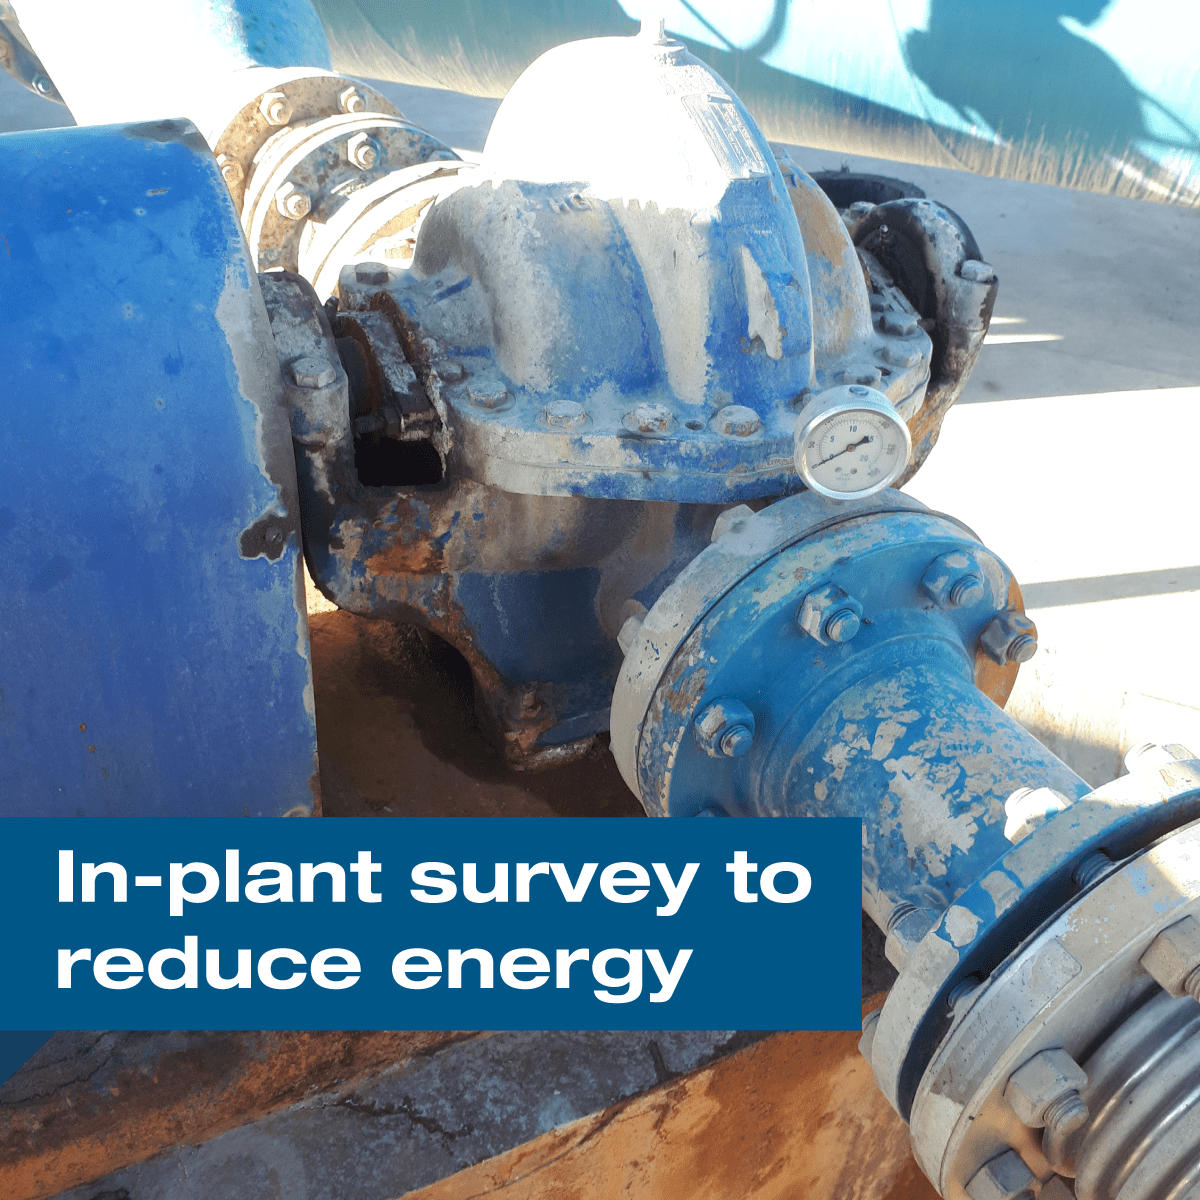 How to Conduct an In-Plant Pumping System Survey to Reduce Energy Consumption?